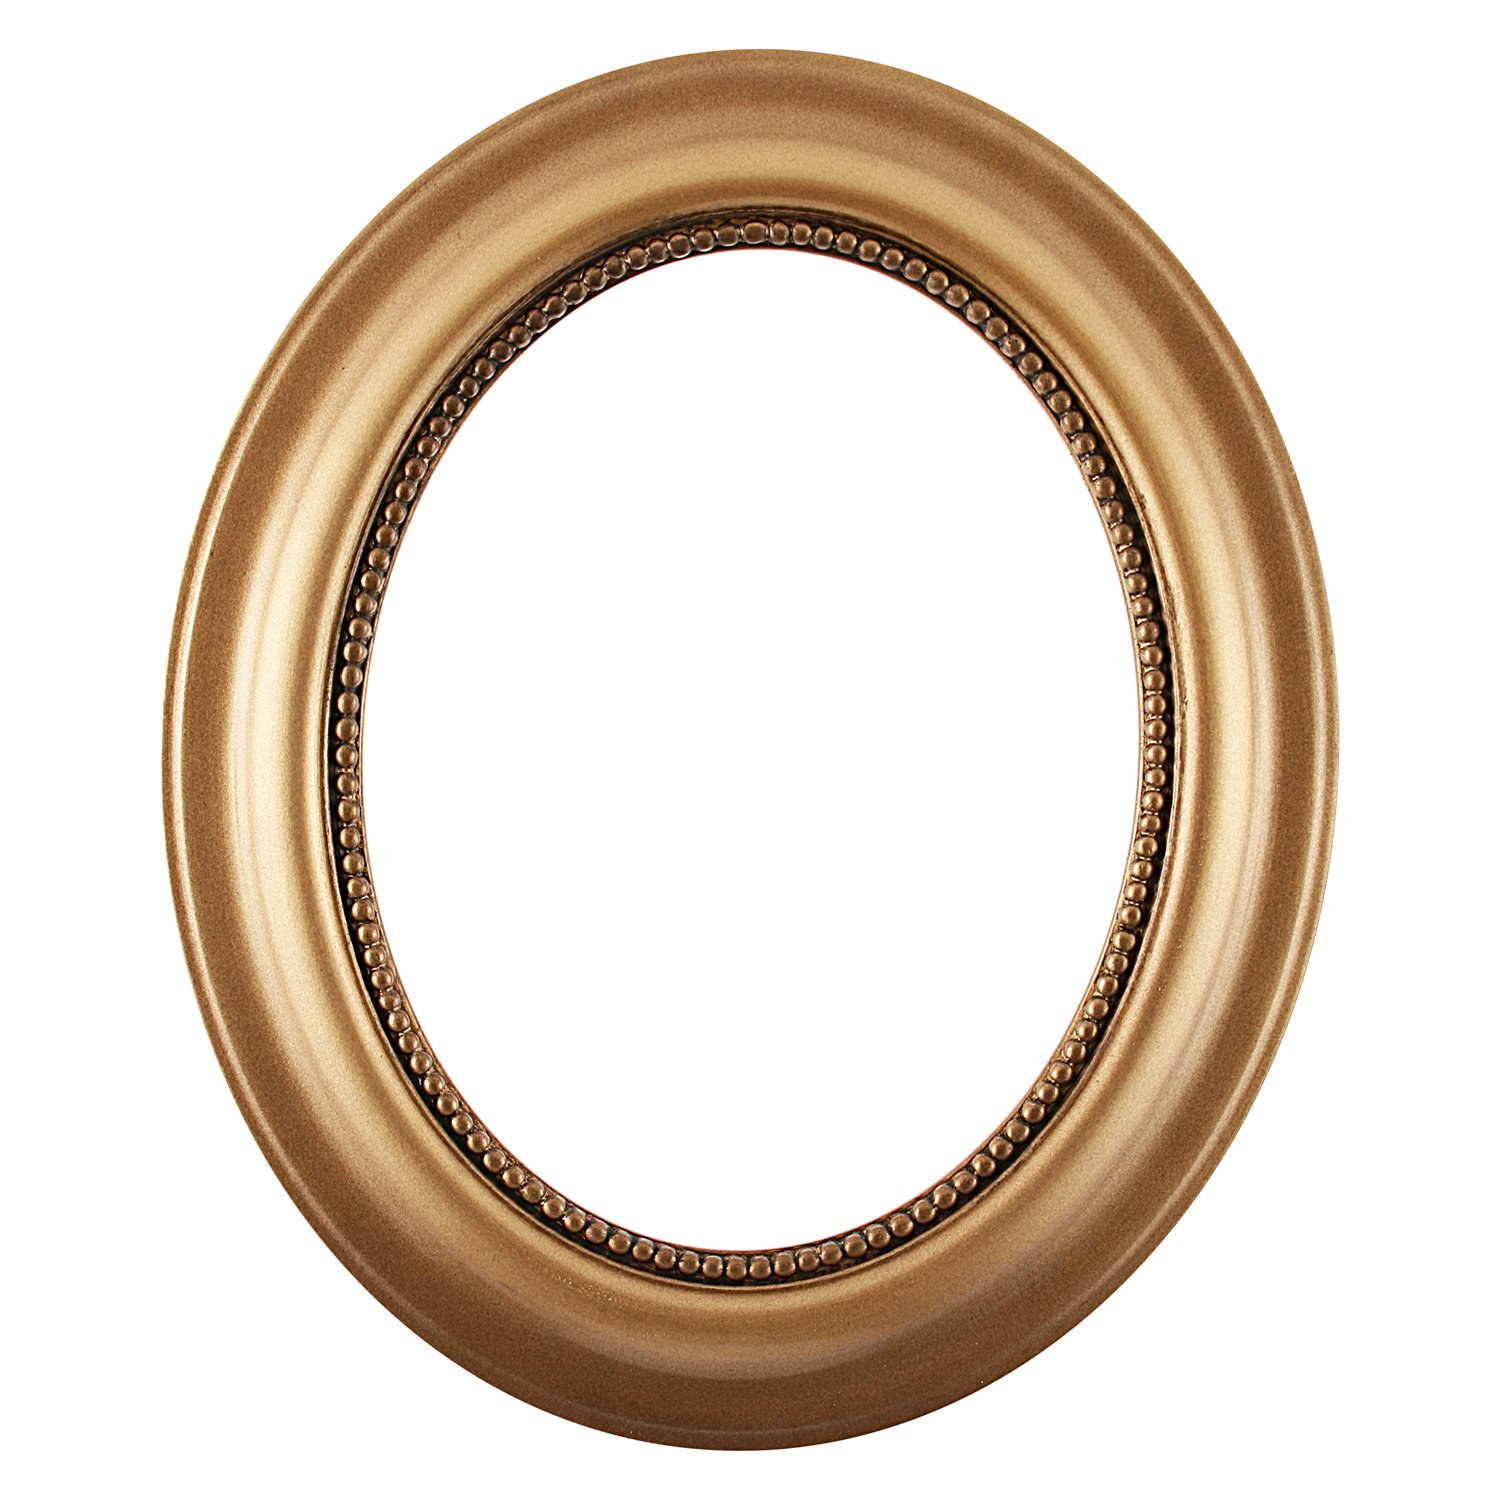 Oval Wall Mirror for Home Decor, Bedroom, Living Room, Bathroom |  Decorative Framed Beveled Mirror | Heritage Style - Desert Gold - 21x25  Inch Outside ...